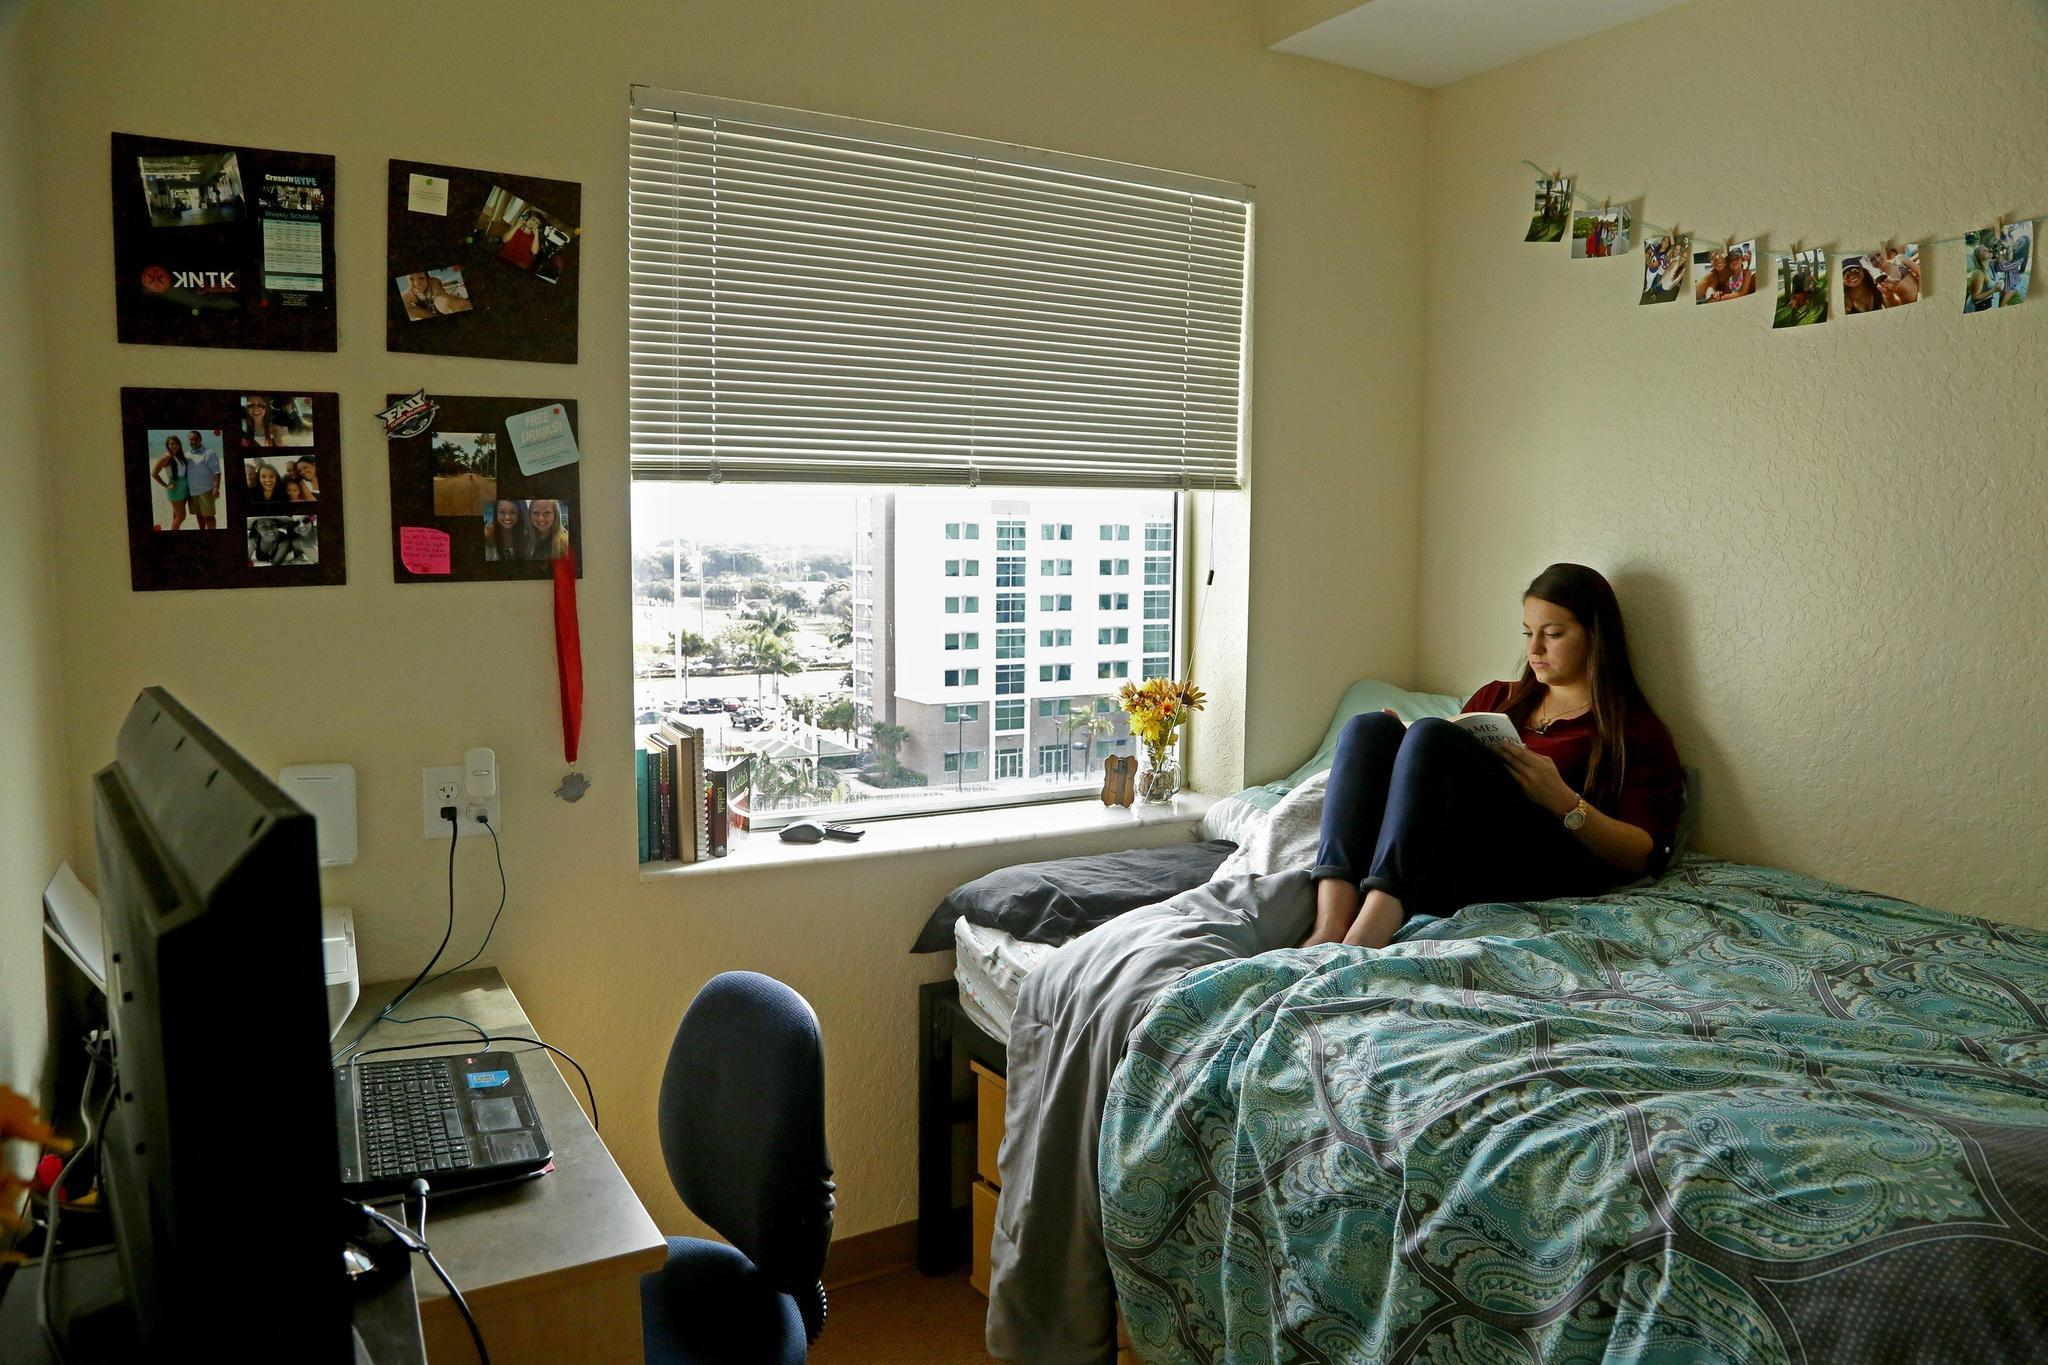 Fau Plans More Student Housing As Demand Booms Sun Sentinel